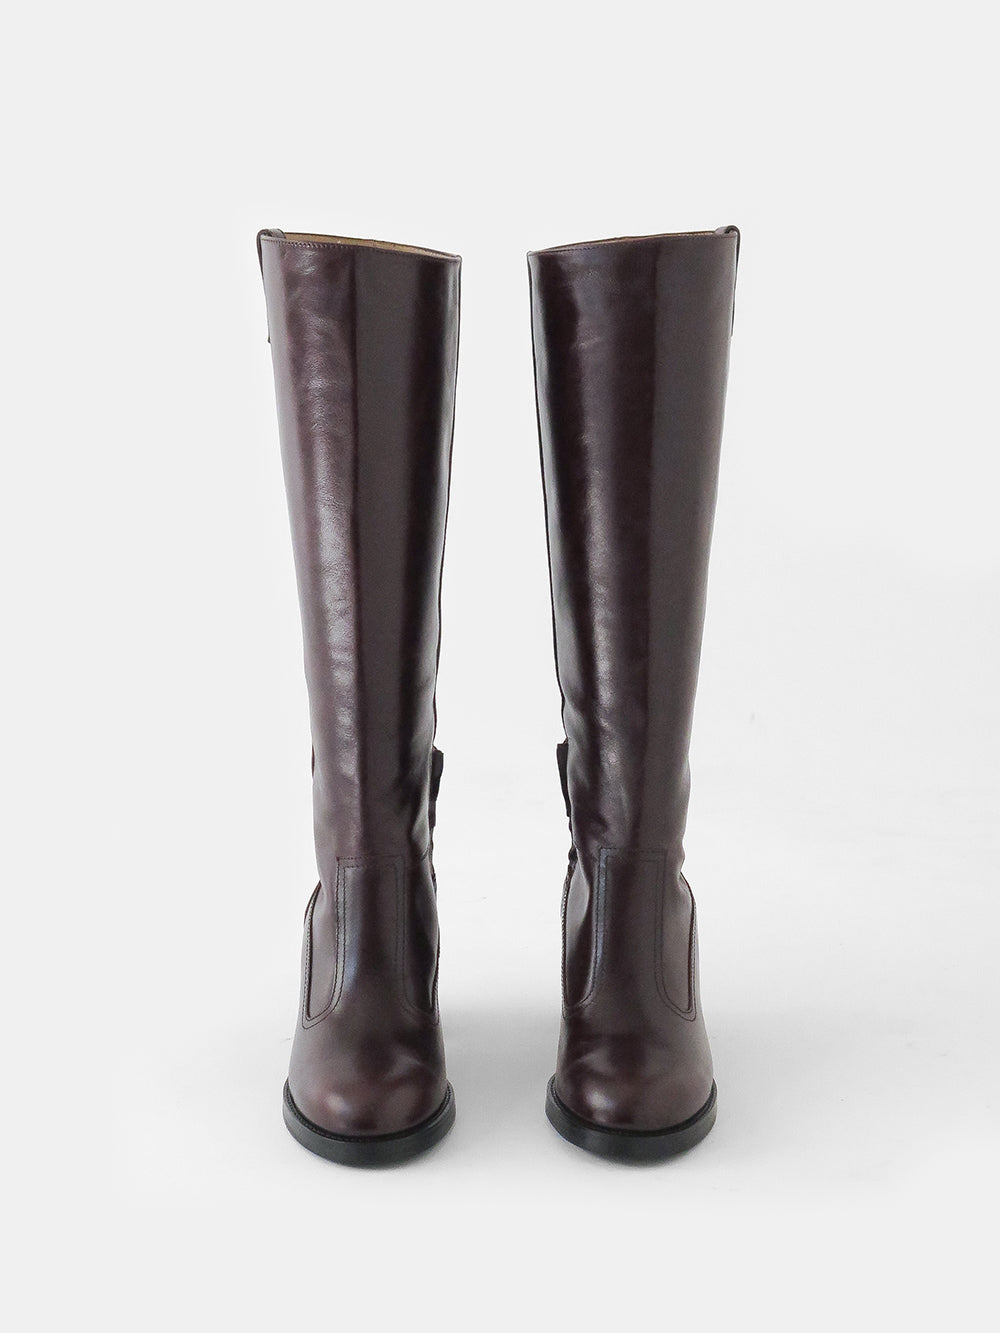 maryam nassir zadeh norfolk boot in mahogany